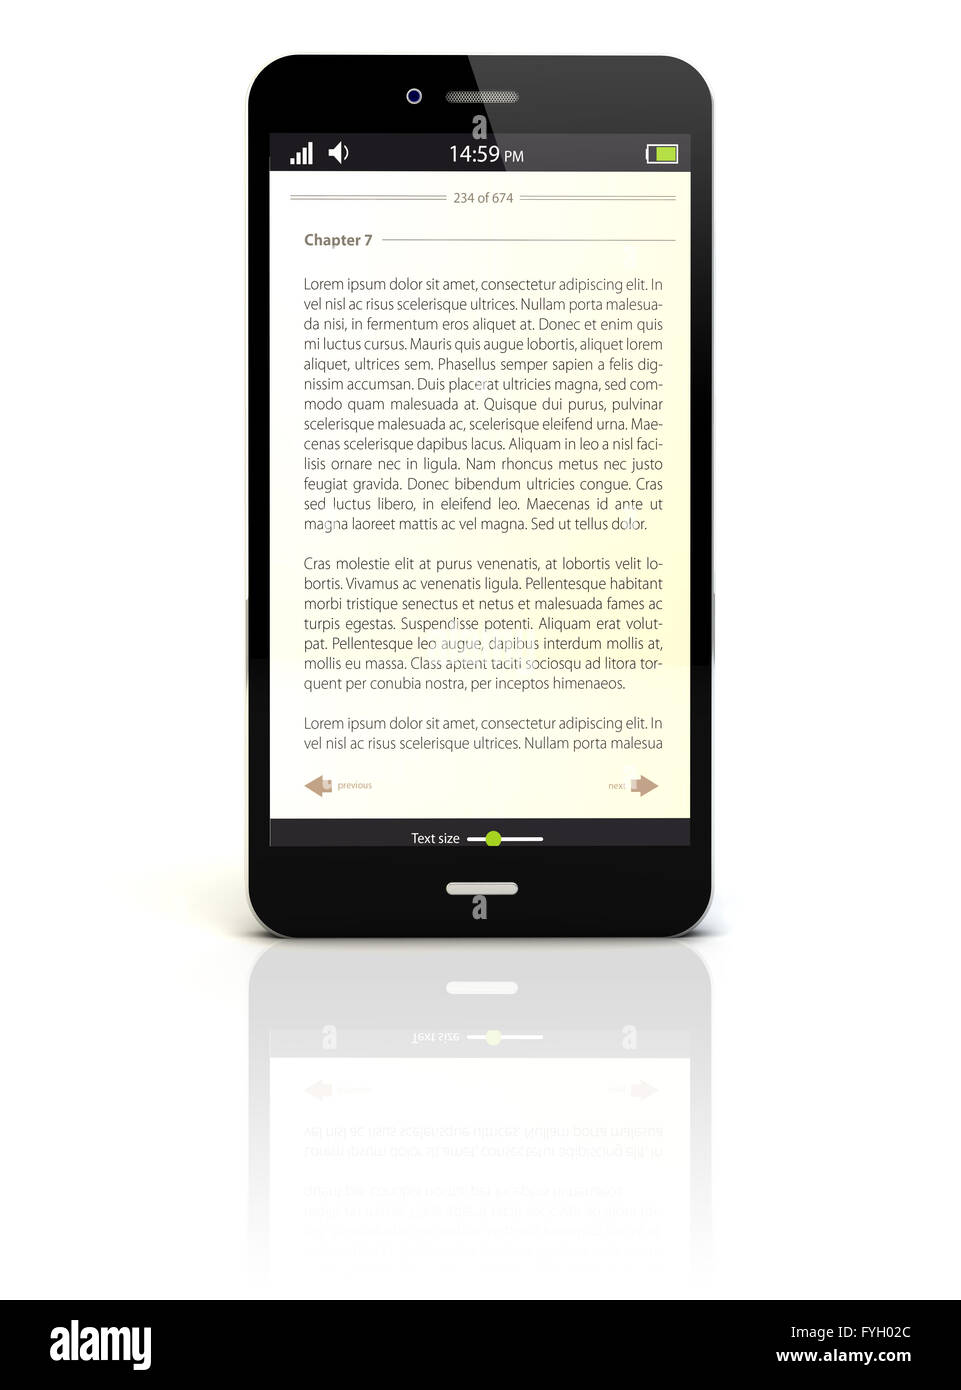 smartphone render with an ebook app on the screen - Stock Image